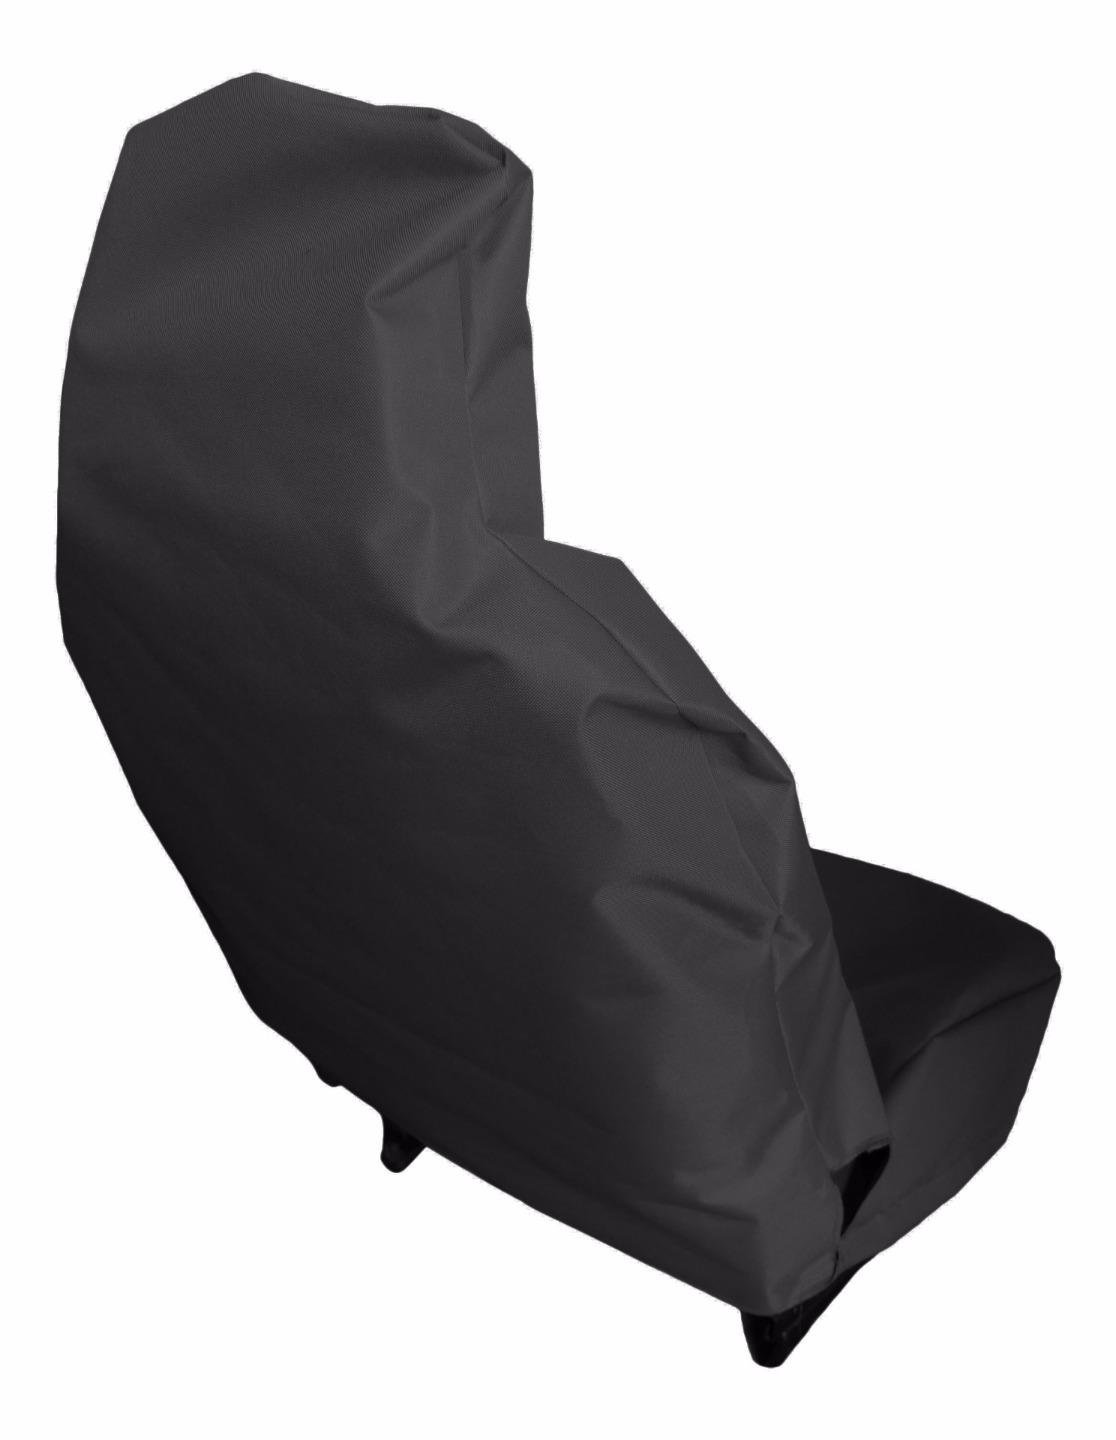 Heavy Duty Black Waterproof Car Seat Covers//Protectors 2011- 2 x Fronts Jazz